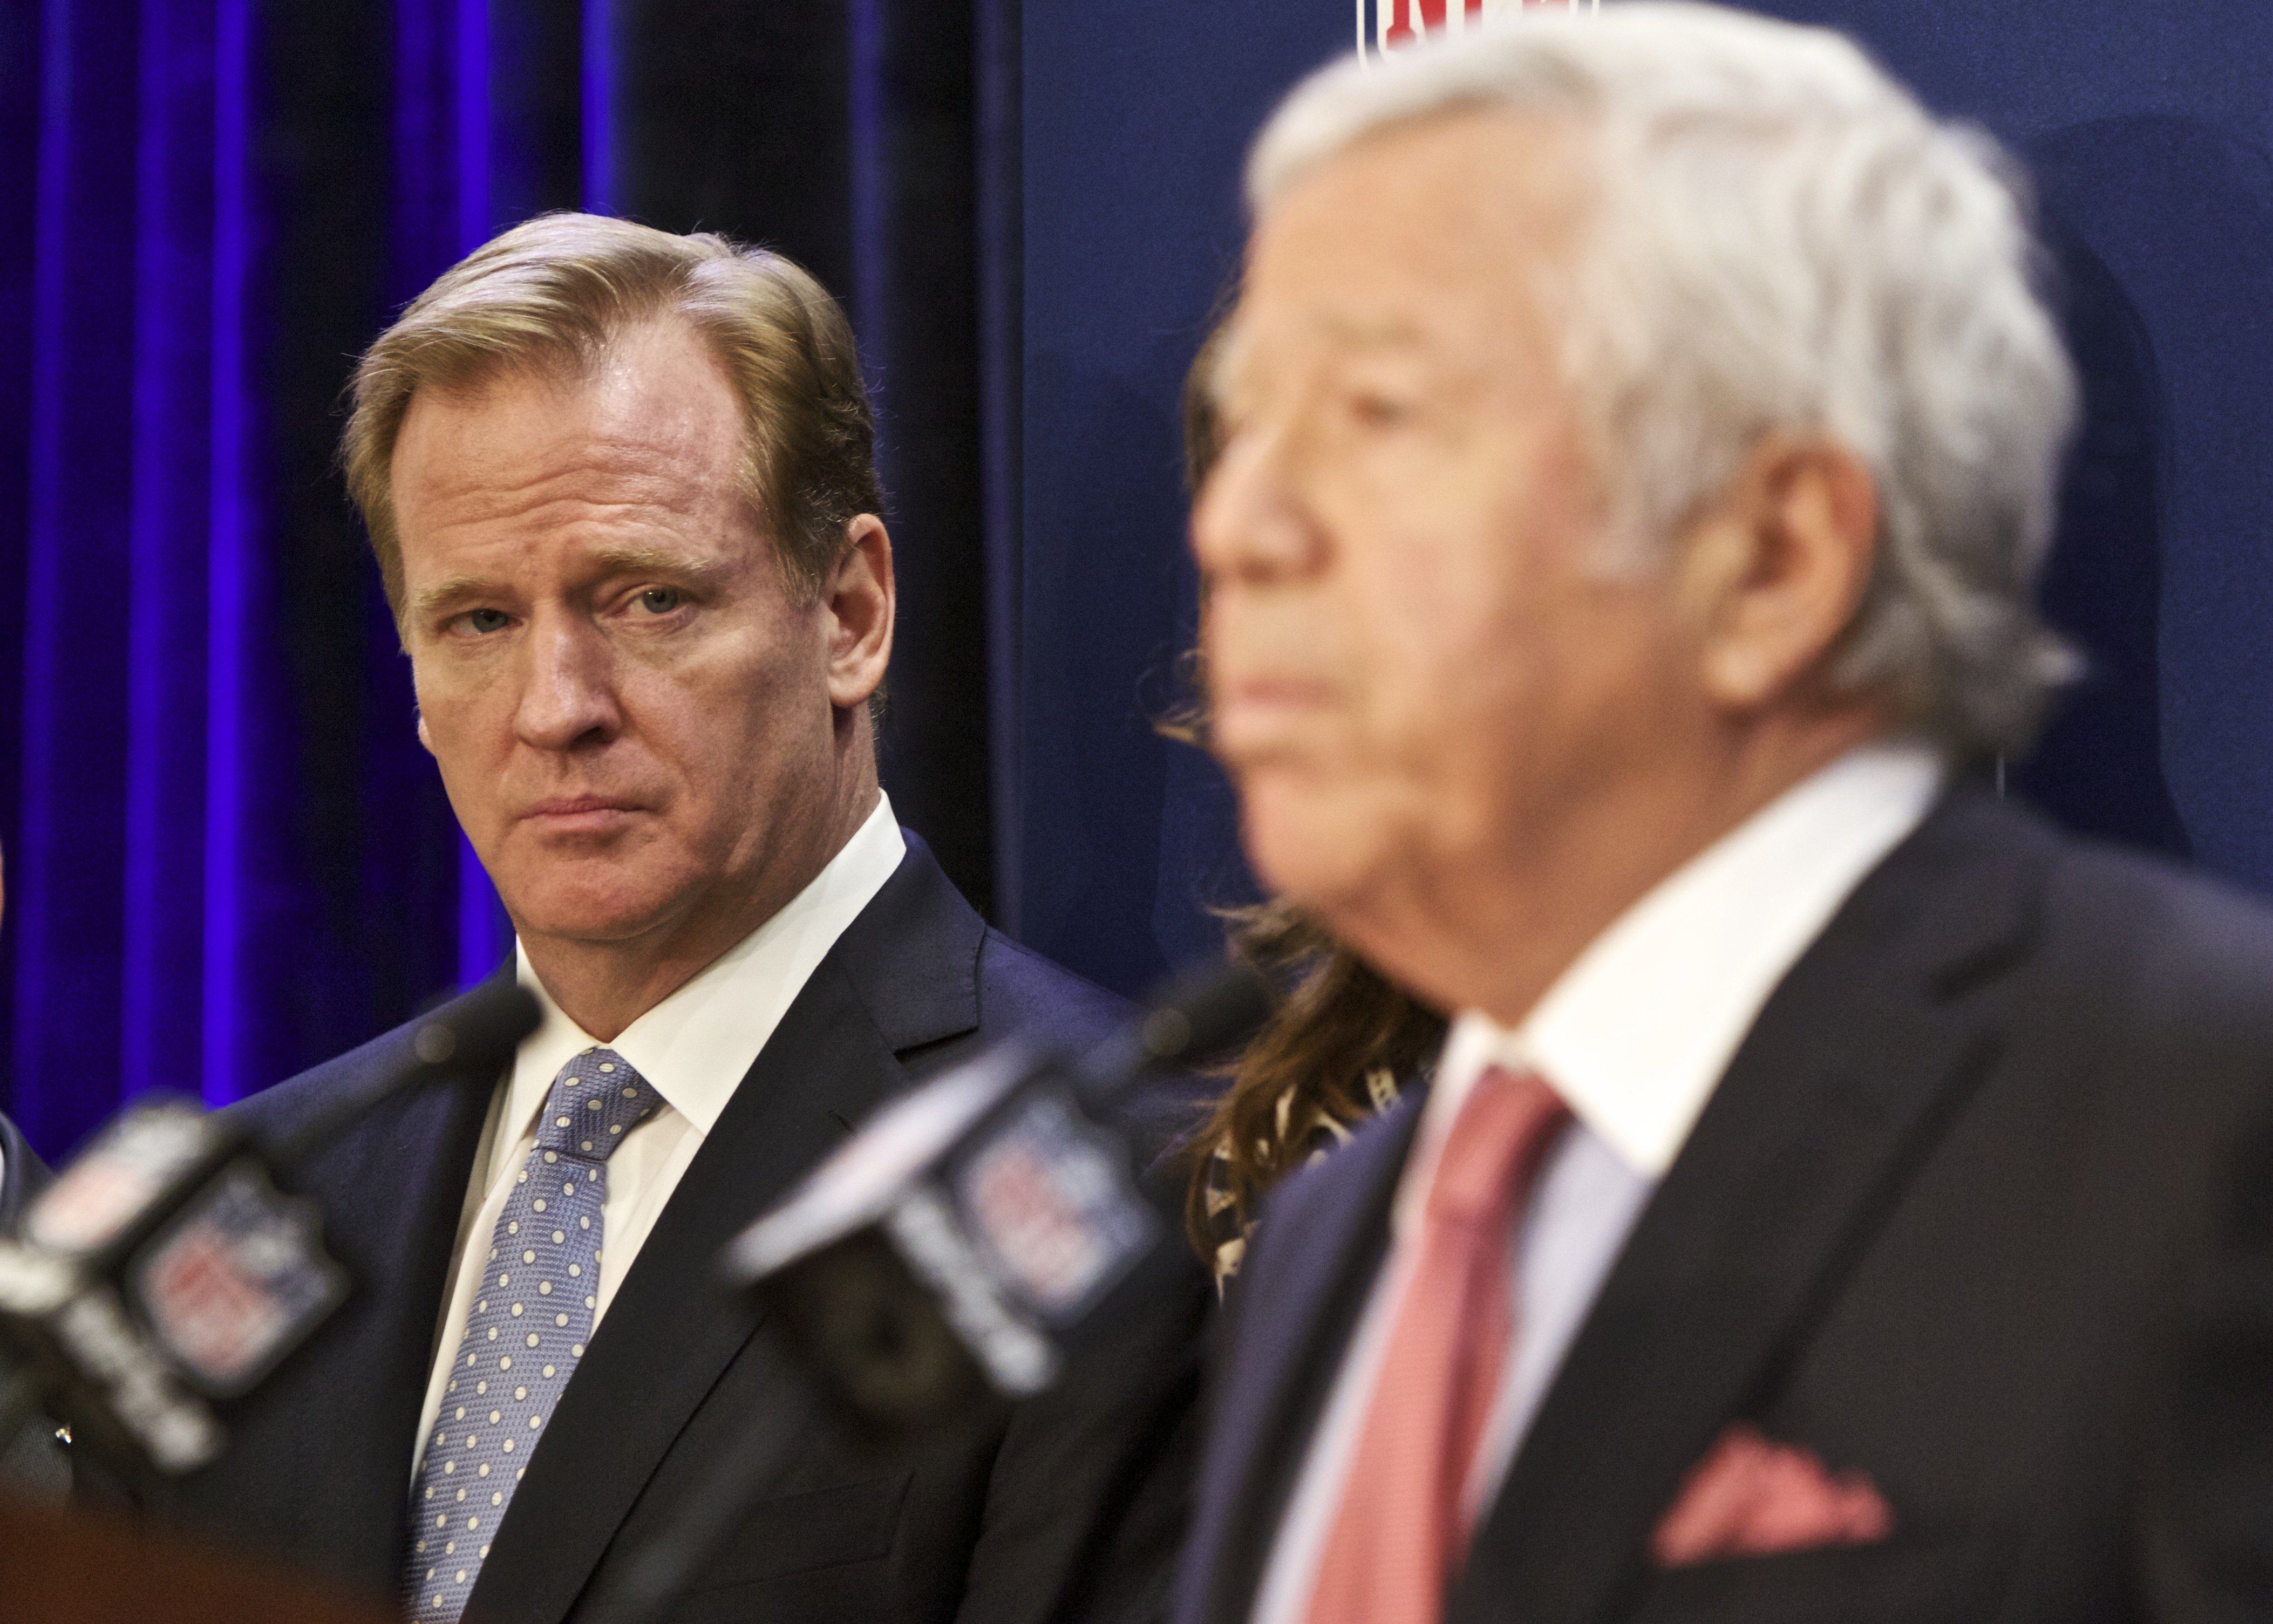 NFL commissioner Roger Goodell looks on as New England Patriots owner Robert Kraft speaks at an NFL press conference announcing new measures for the league's personal conduct policy during an owners meeting on Dec. 10, 2014, in Irving, Texas.